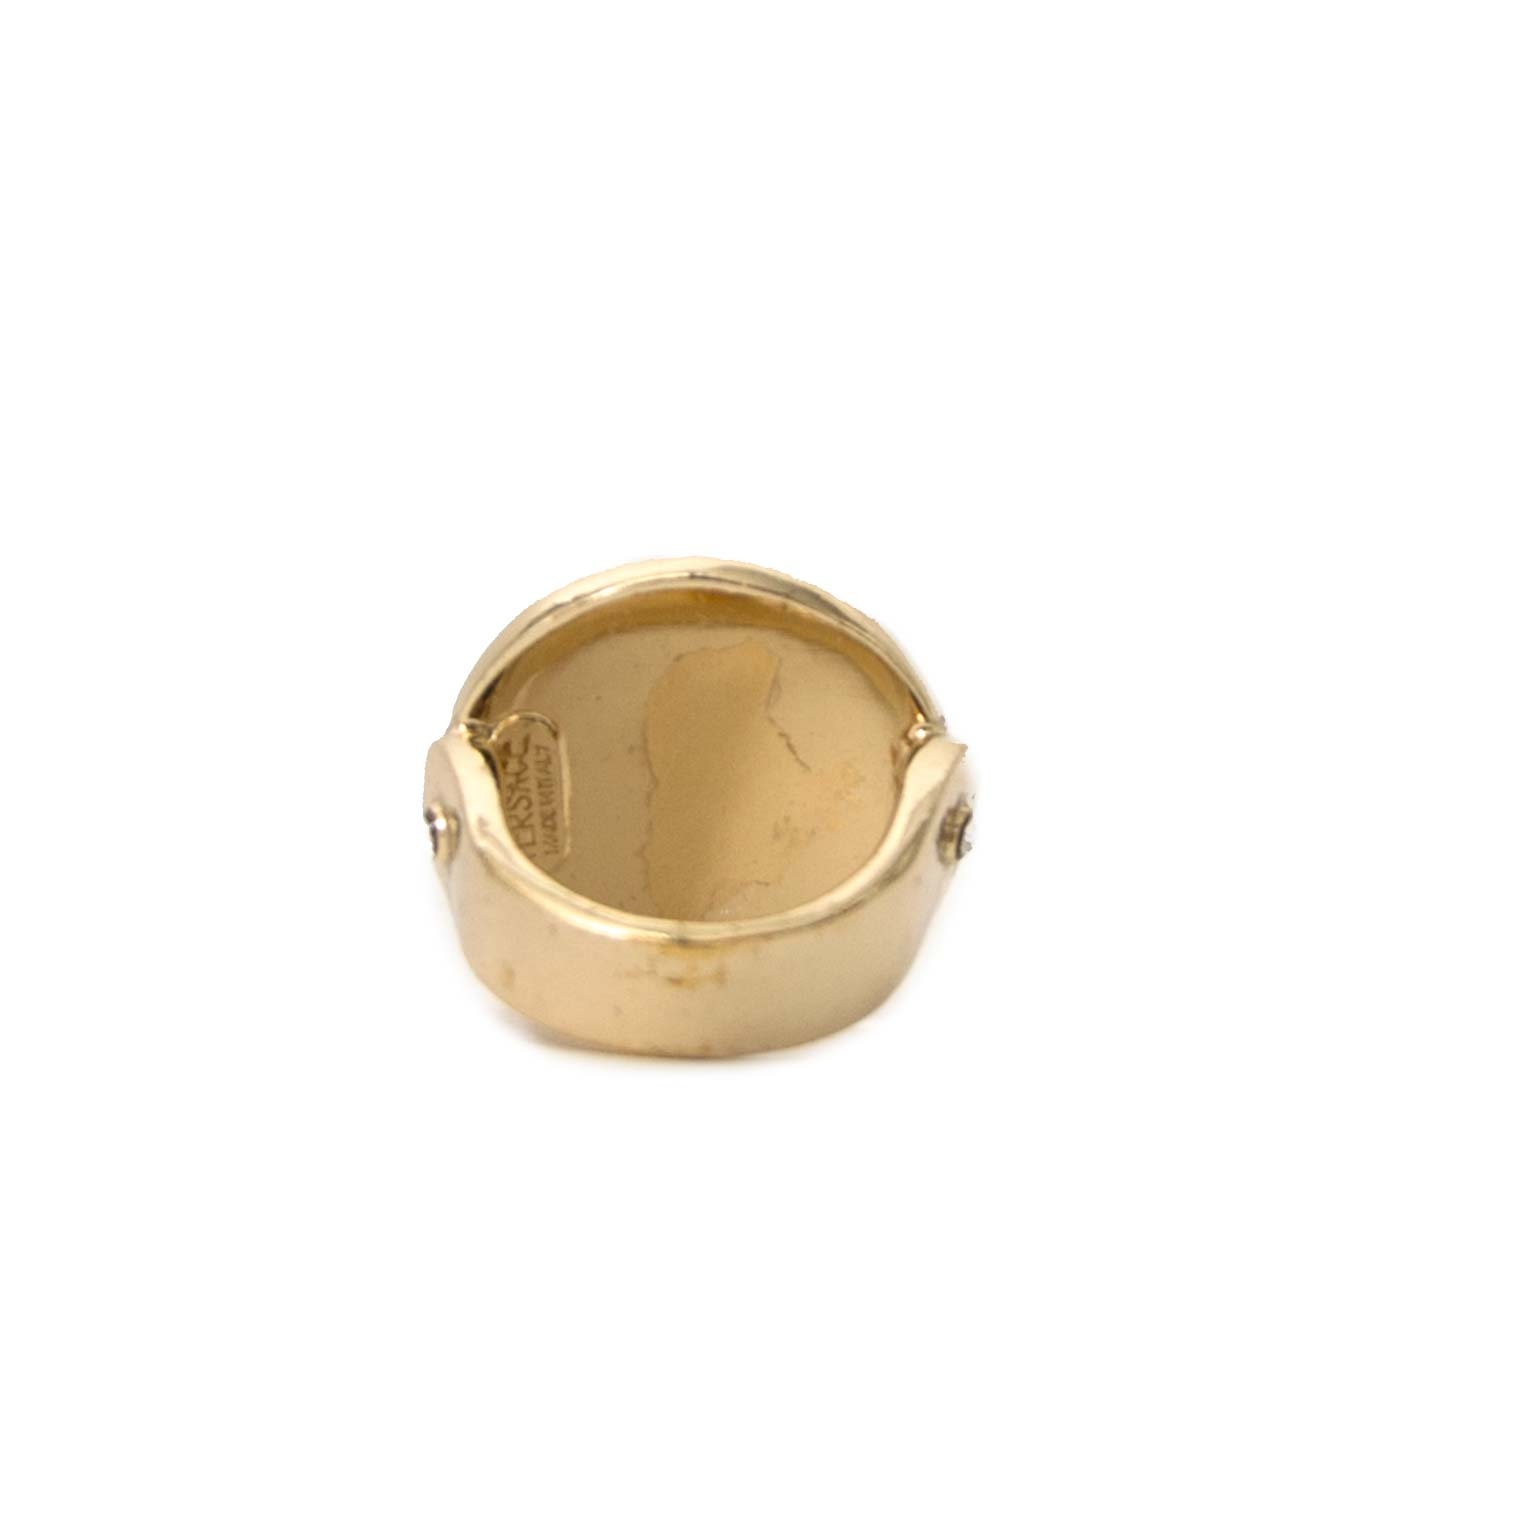 Buy authentic versace gold medusa rings now online at  labellov vintage fashion webshop belgium